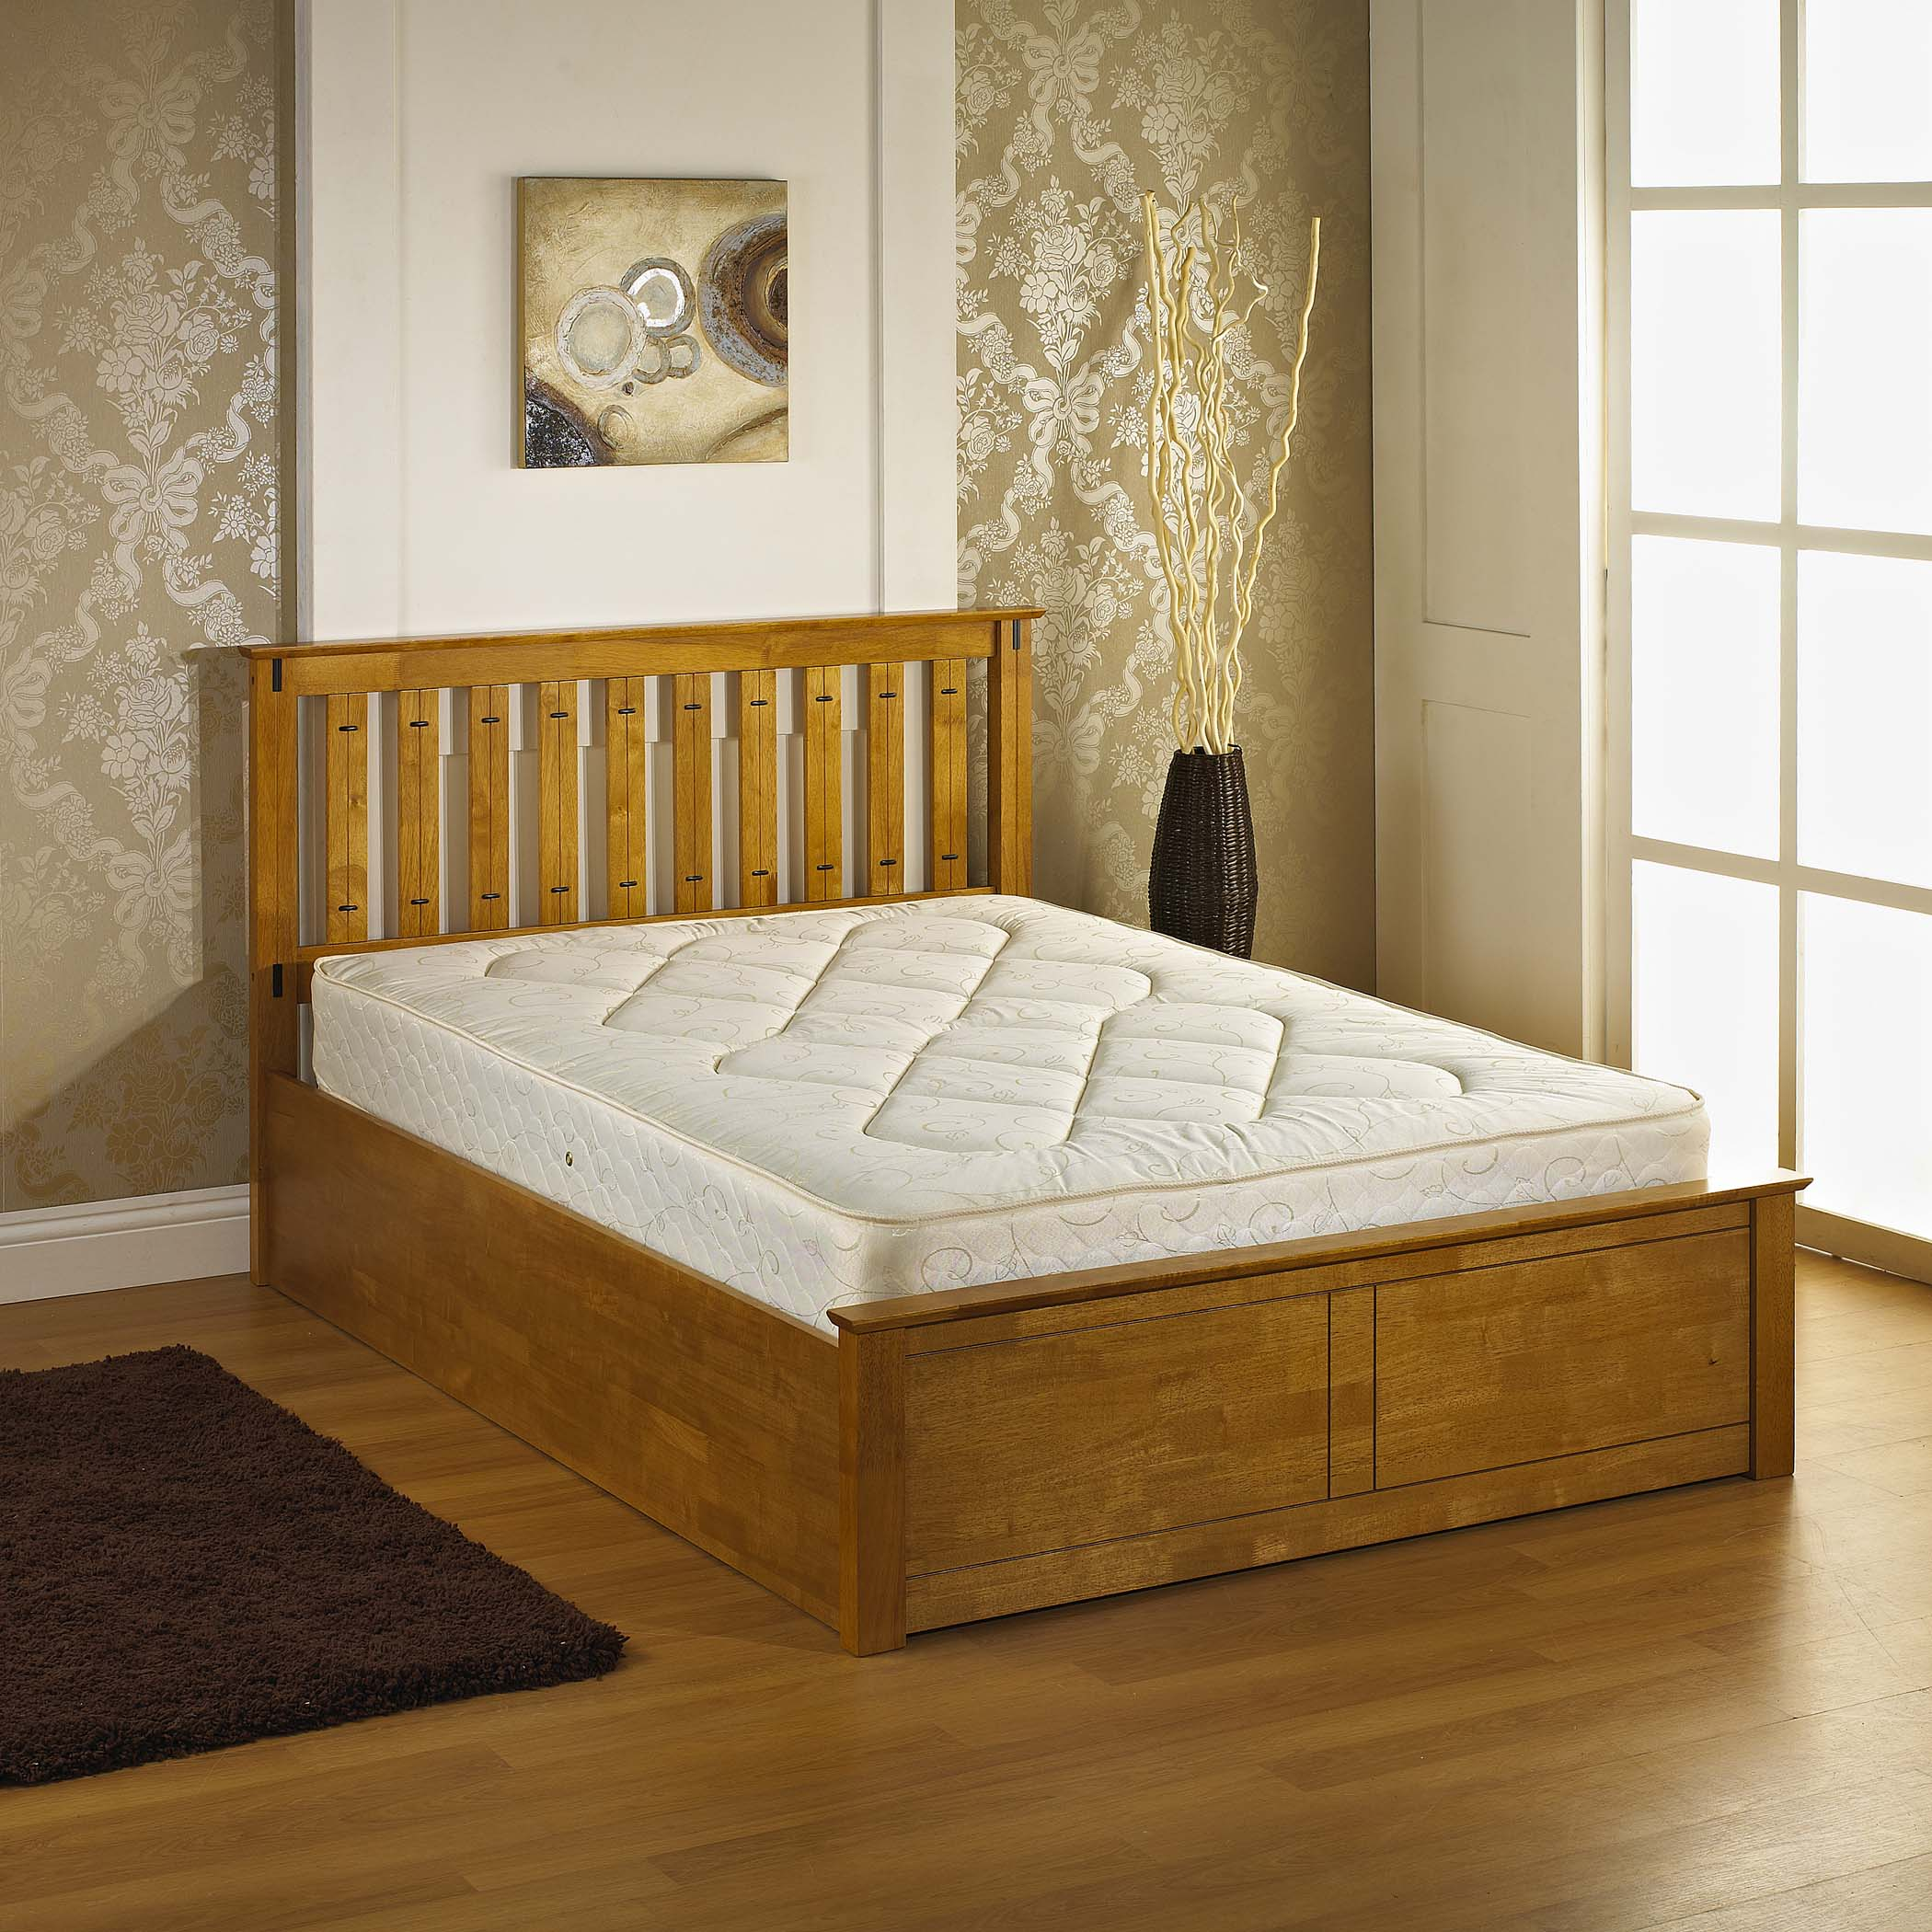 The Italian Furniture Company Leeds Ltd Importers And Distributors Of Quality Furniture In The Uk Veronica Storage Bed